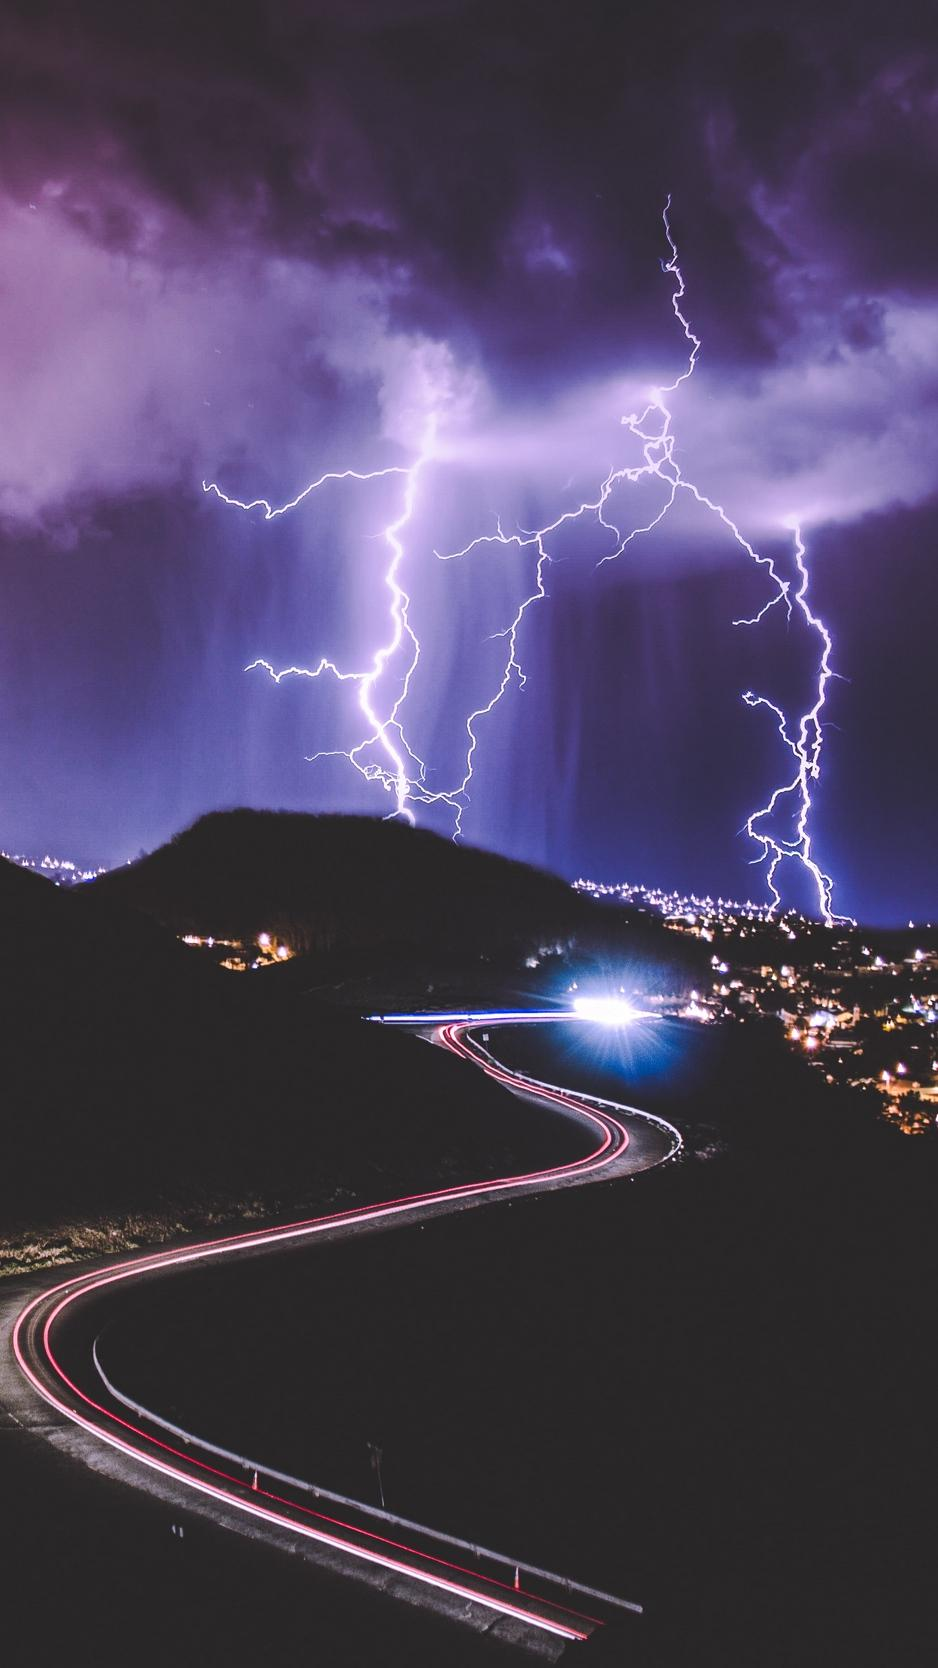 Lightning Iphone Wallpapers Top Free Lightning Iphone Backgrounds Wallpaperaccess